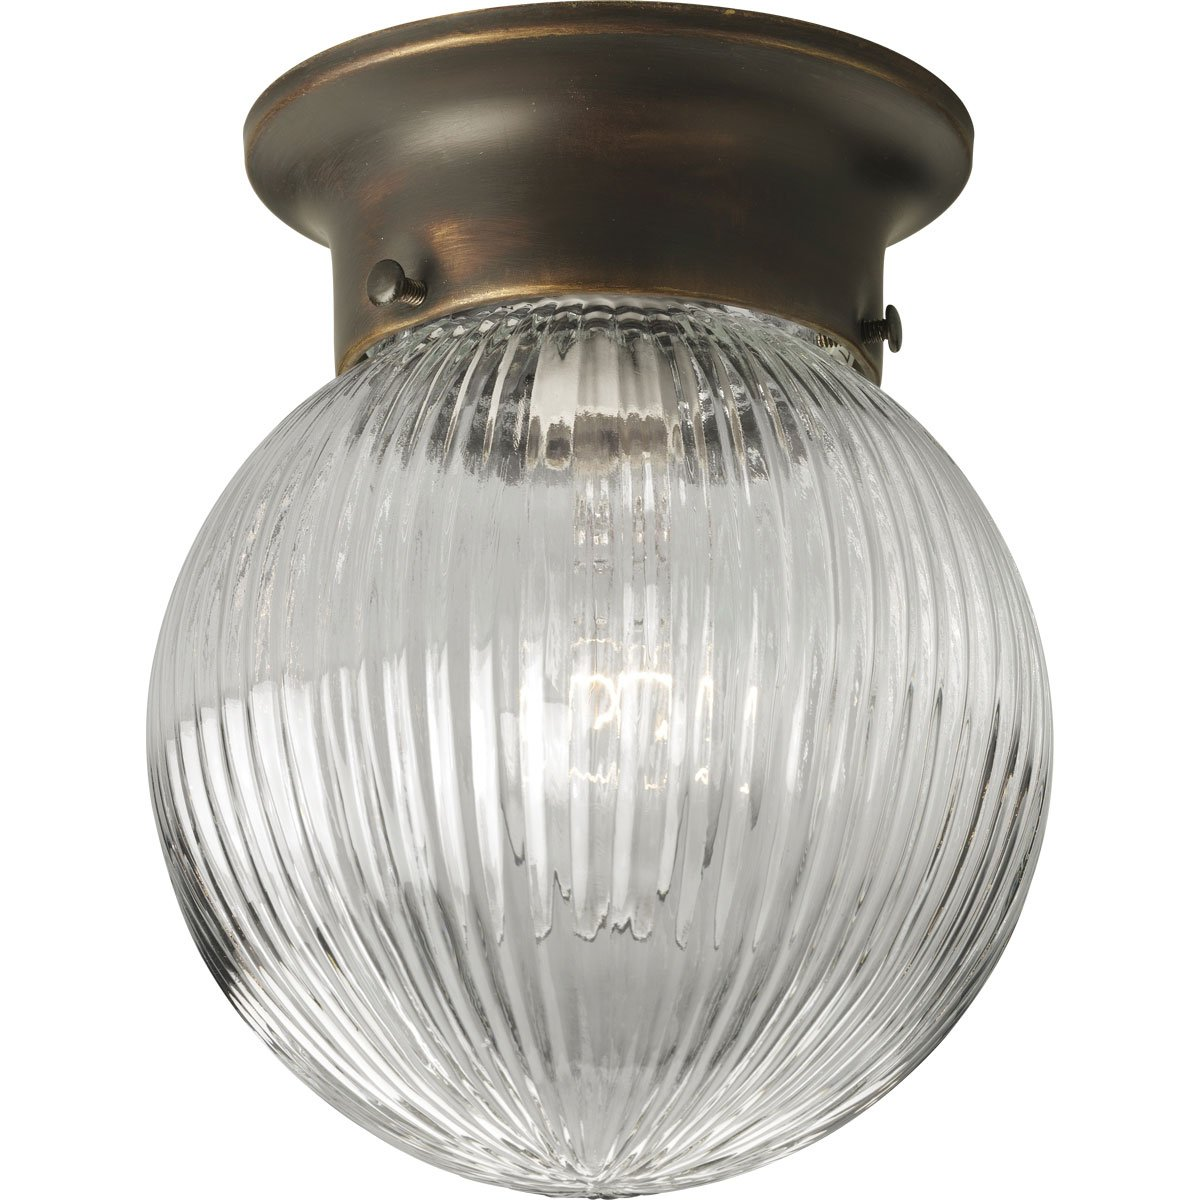 Progress lighting p3599 20 1 light close to ceiling fixture antique progress lighting p3599 20 1 light close to ceiling fixture antique bronze amazon aloadofball Gallery